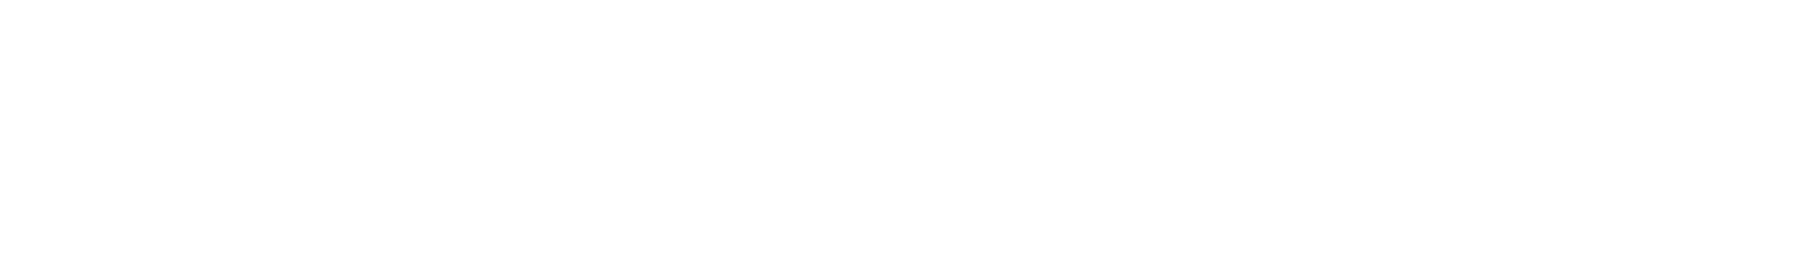 123 c pianotexture sp 01